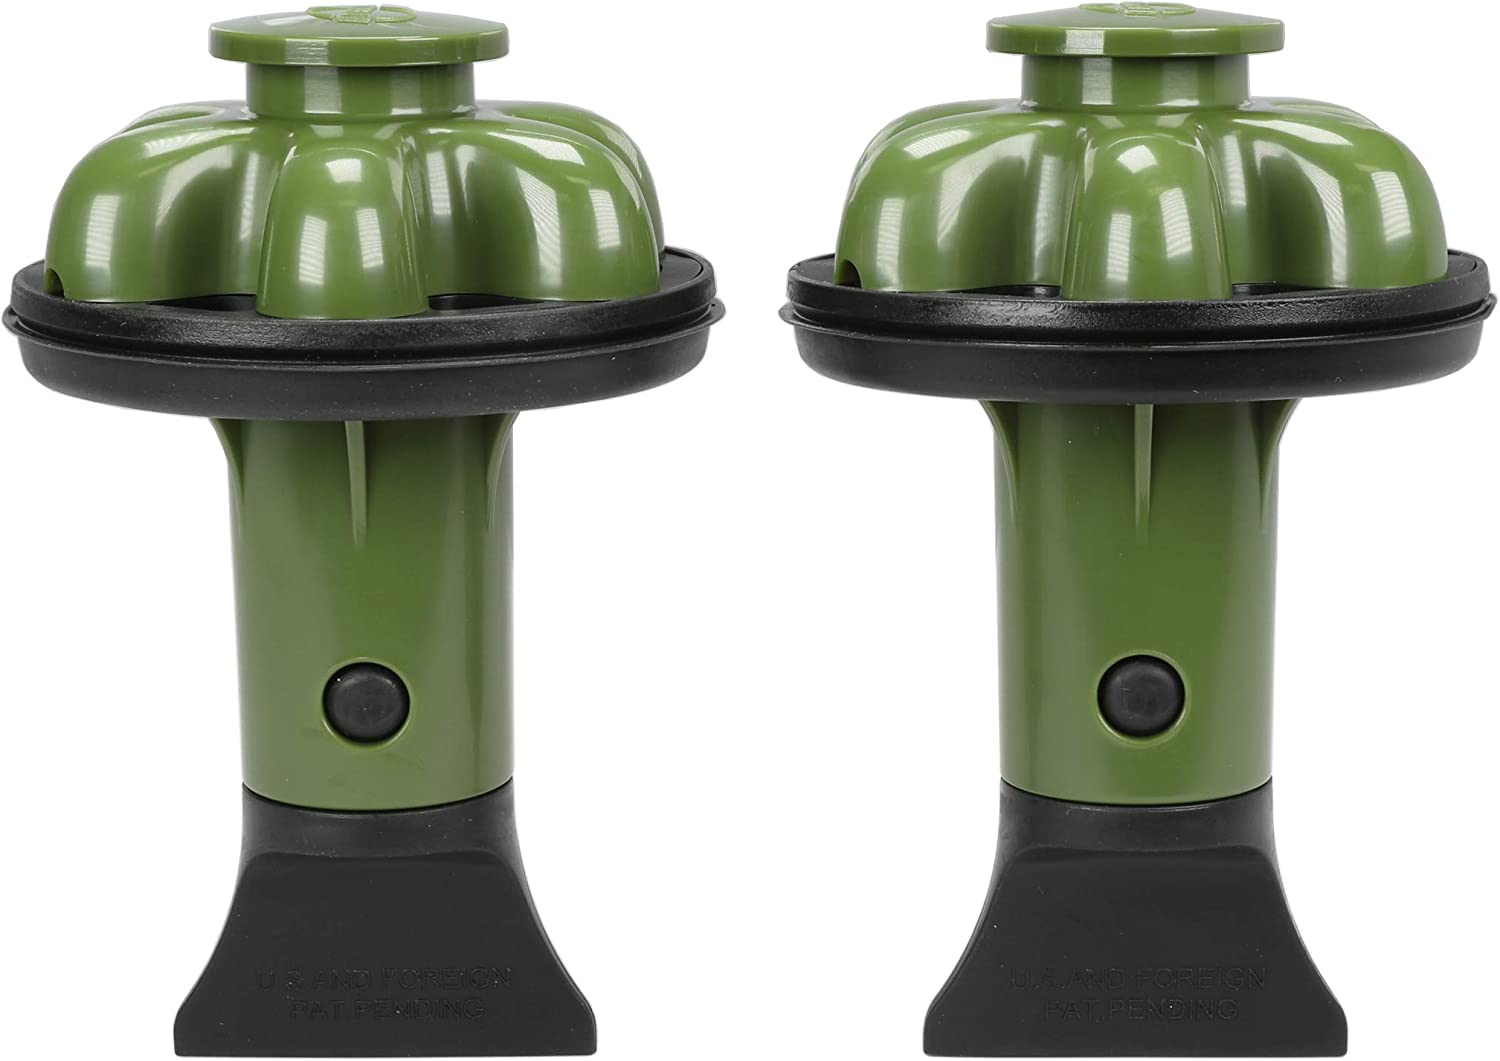 Danco 10920A | Disposal Genie II Garbage Disposal Strainer and Stopper, Kitchen Sink Drain Splash Guard with Food Scraper, Olive, 2-Pack